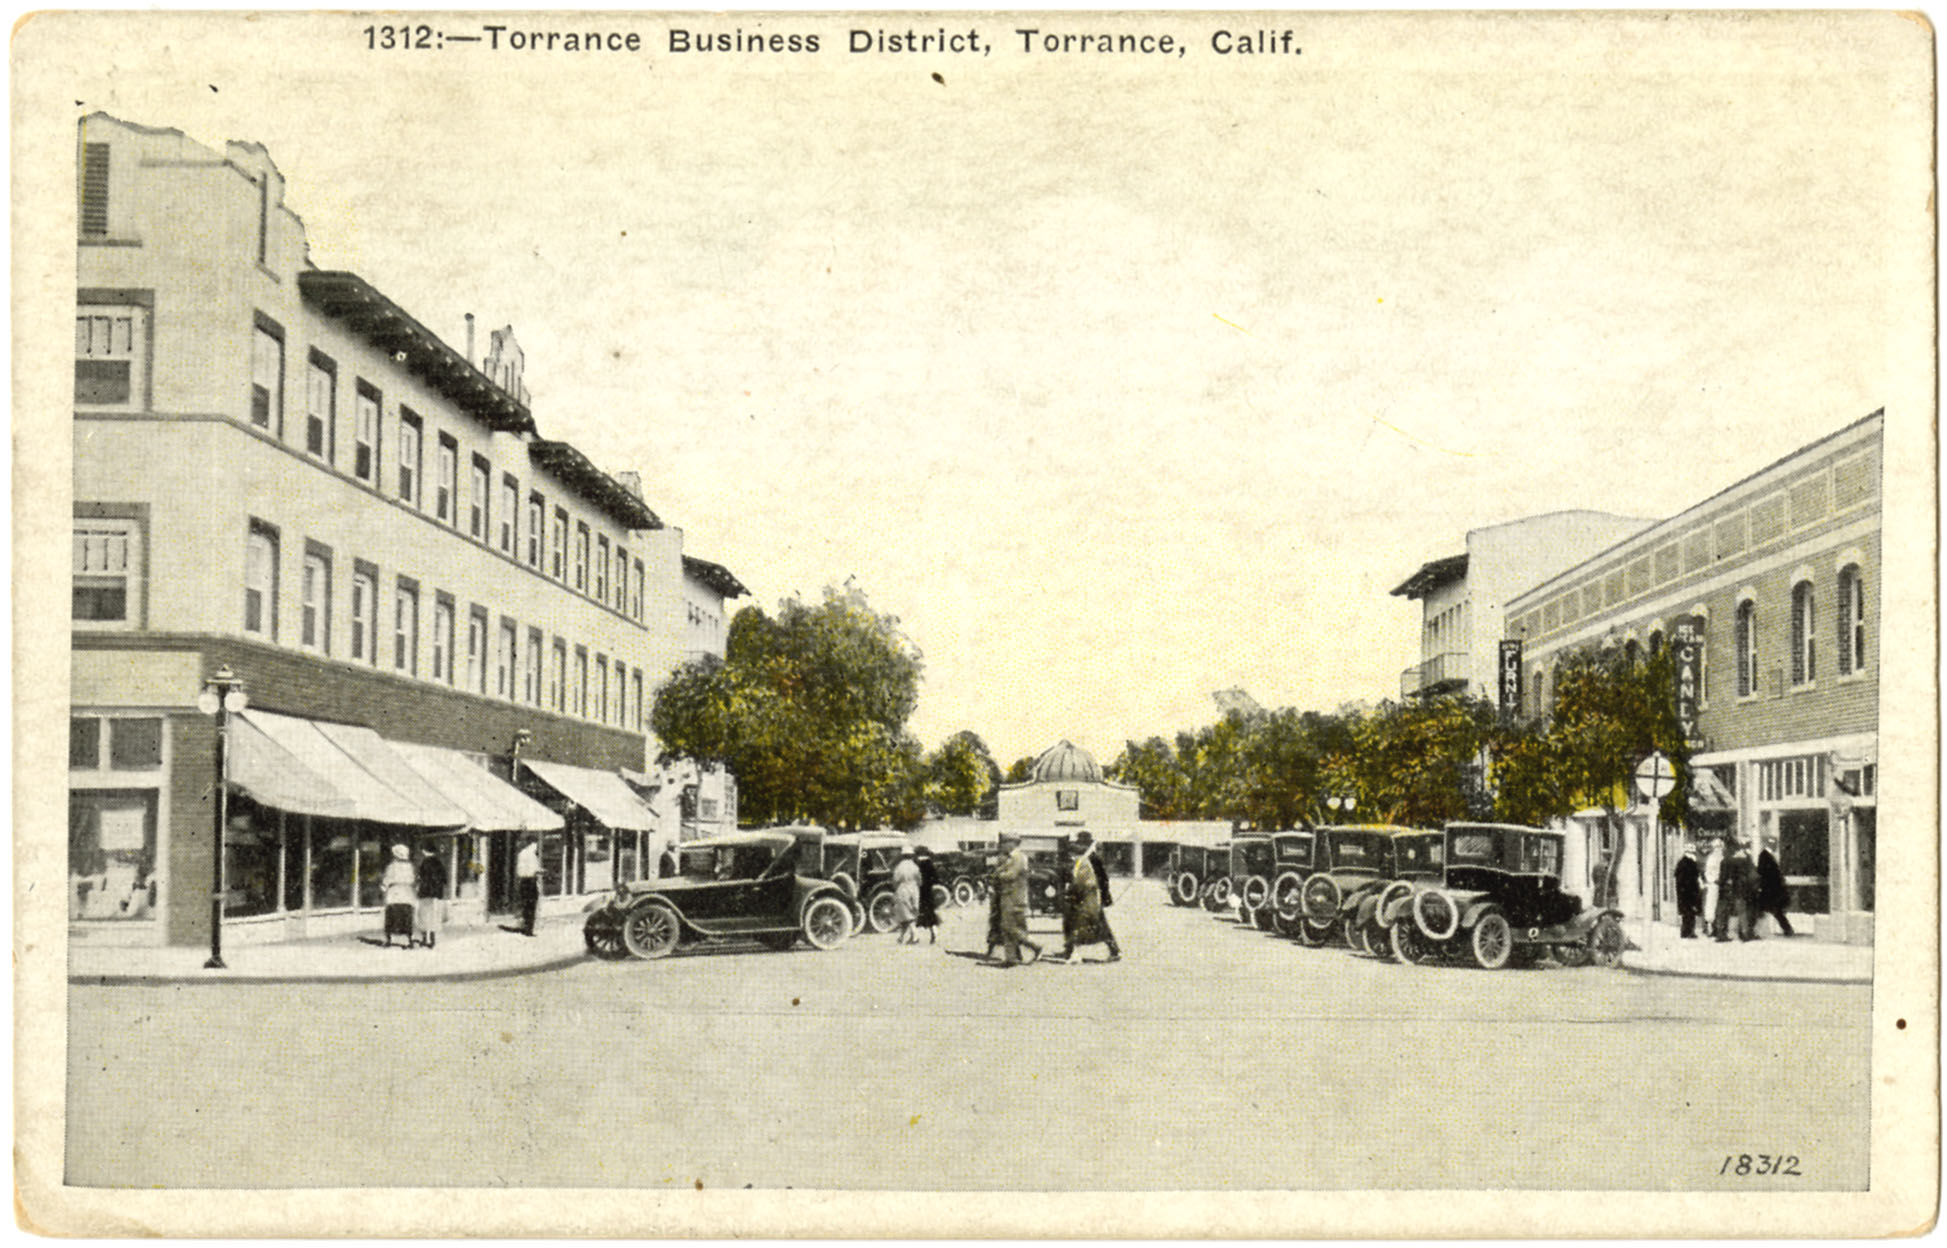 Postcard drawing of Torrance Business District